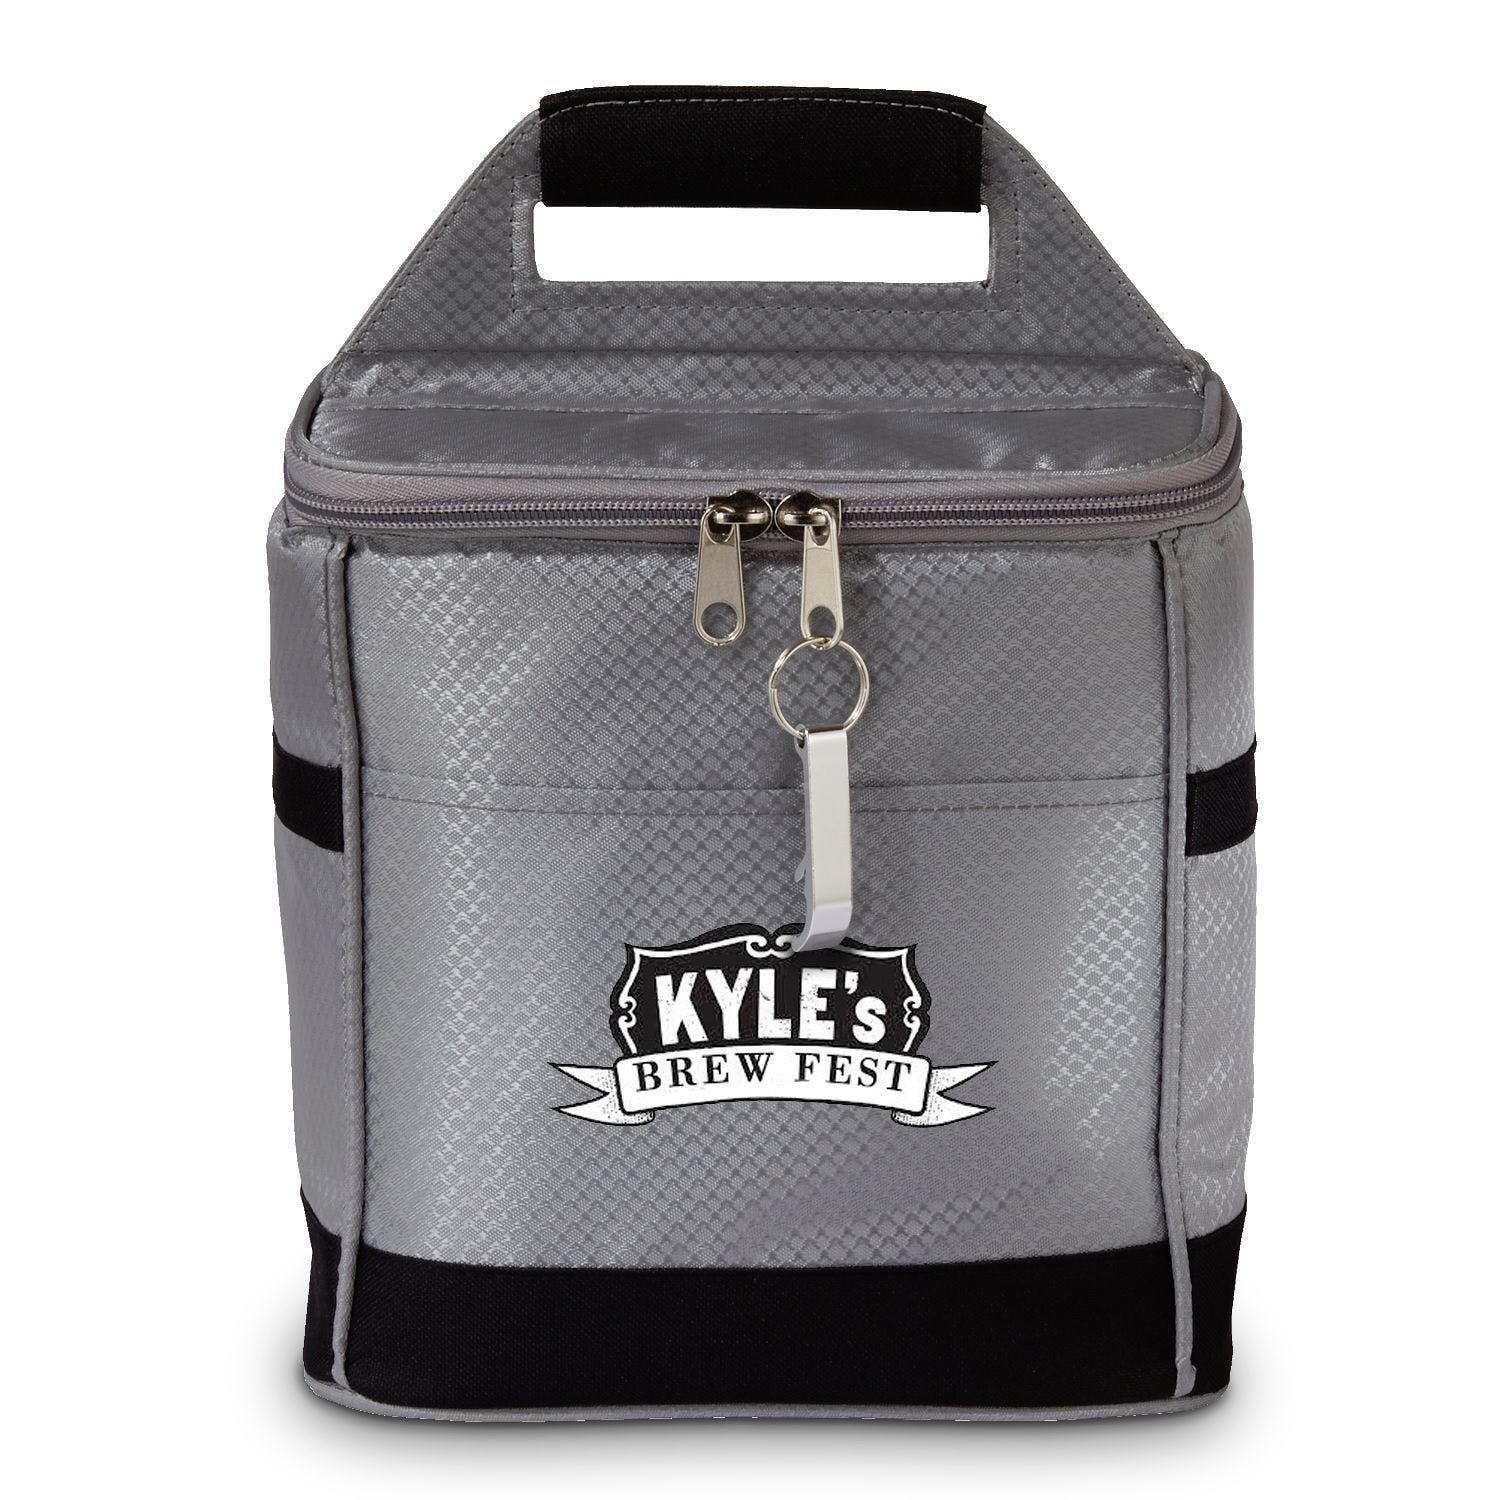 MicroBrew Six Cooler Insulated cooler sold by MicrobrewMarketing.com